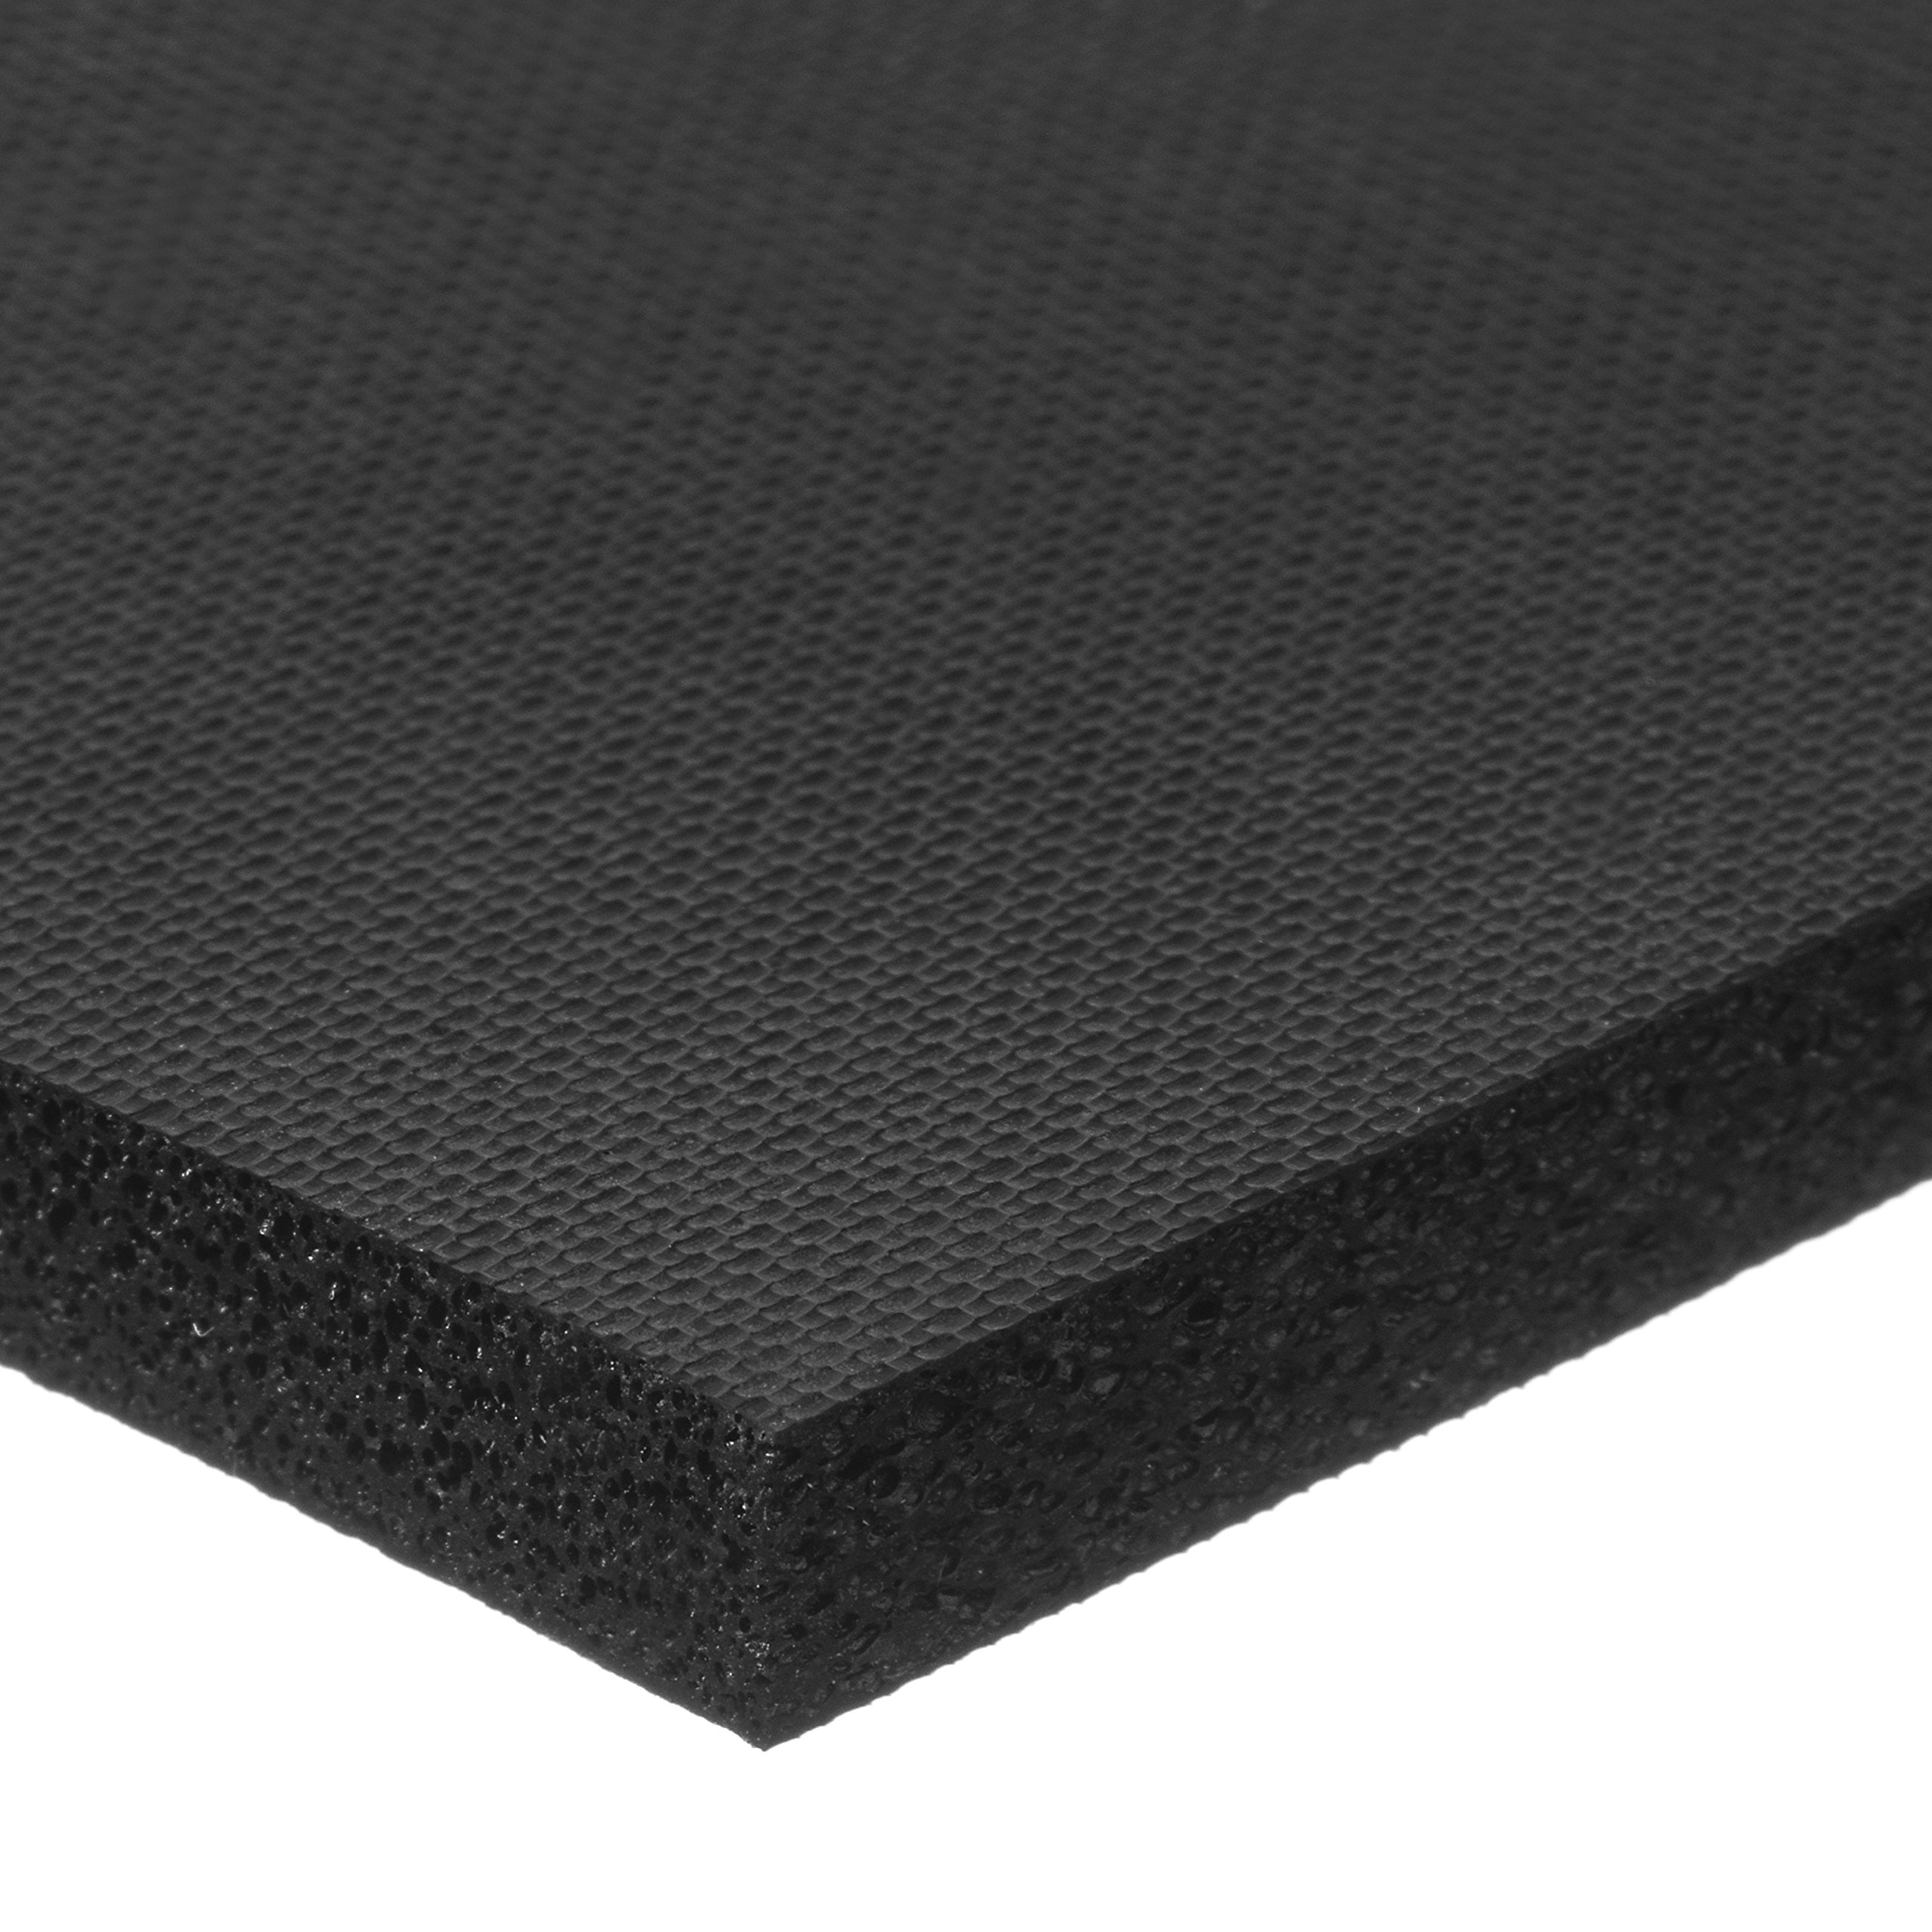 USA Sealing Inc.-Neoprene Foam No Adhesive-1/2''T x 12''W x24''